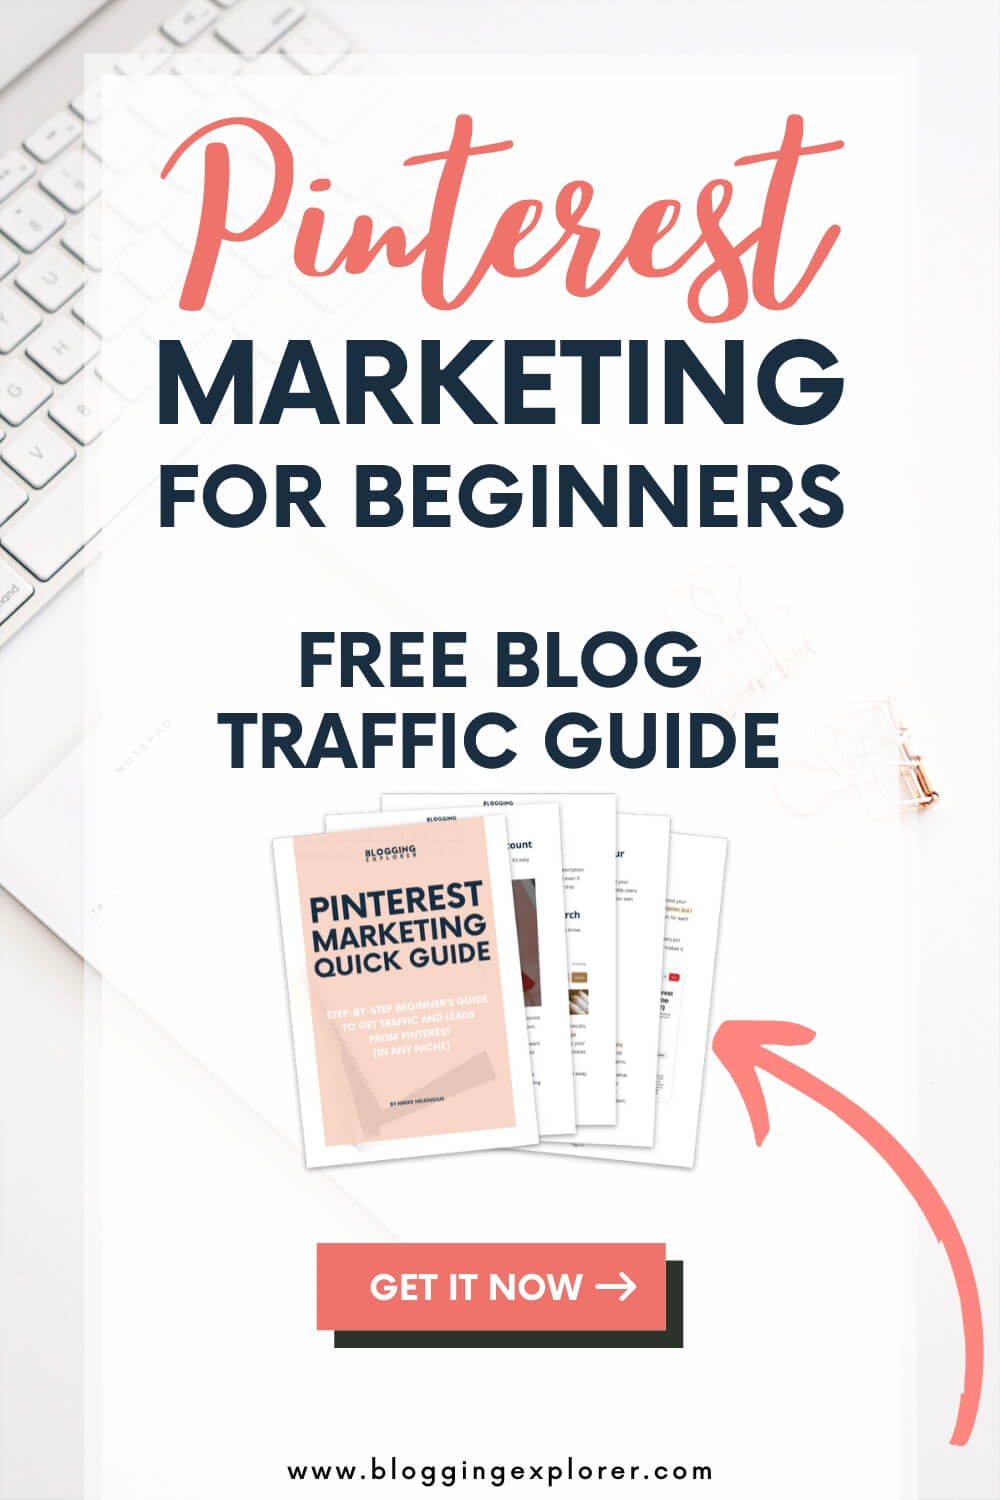 Pinterest Marketing Quick Guide